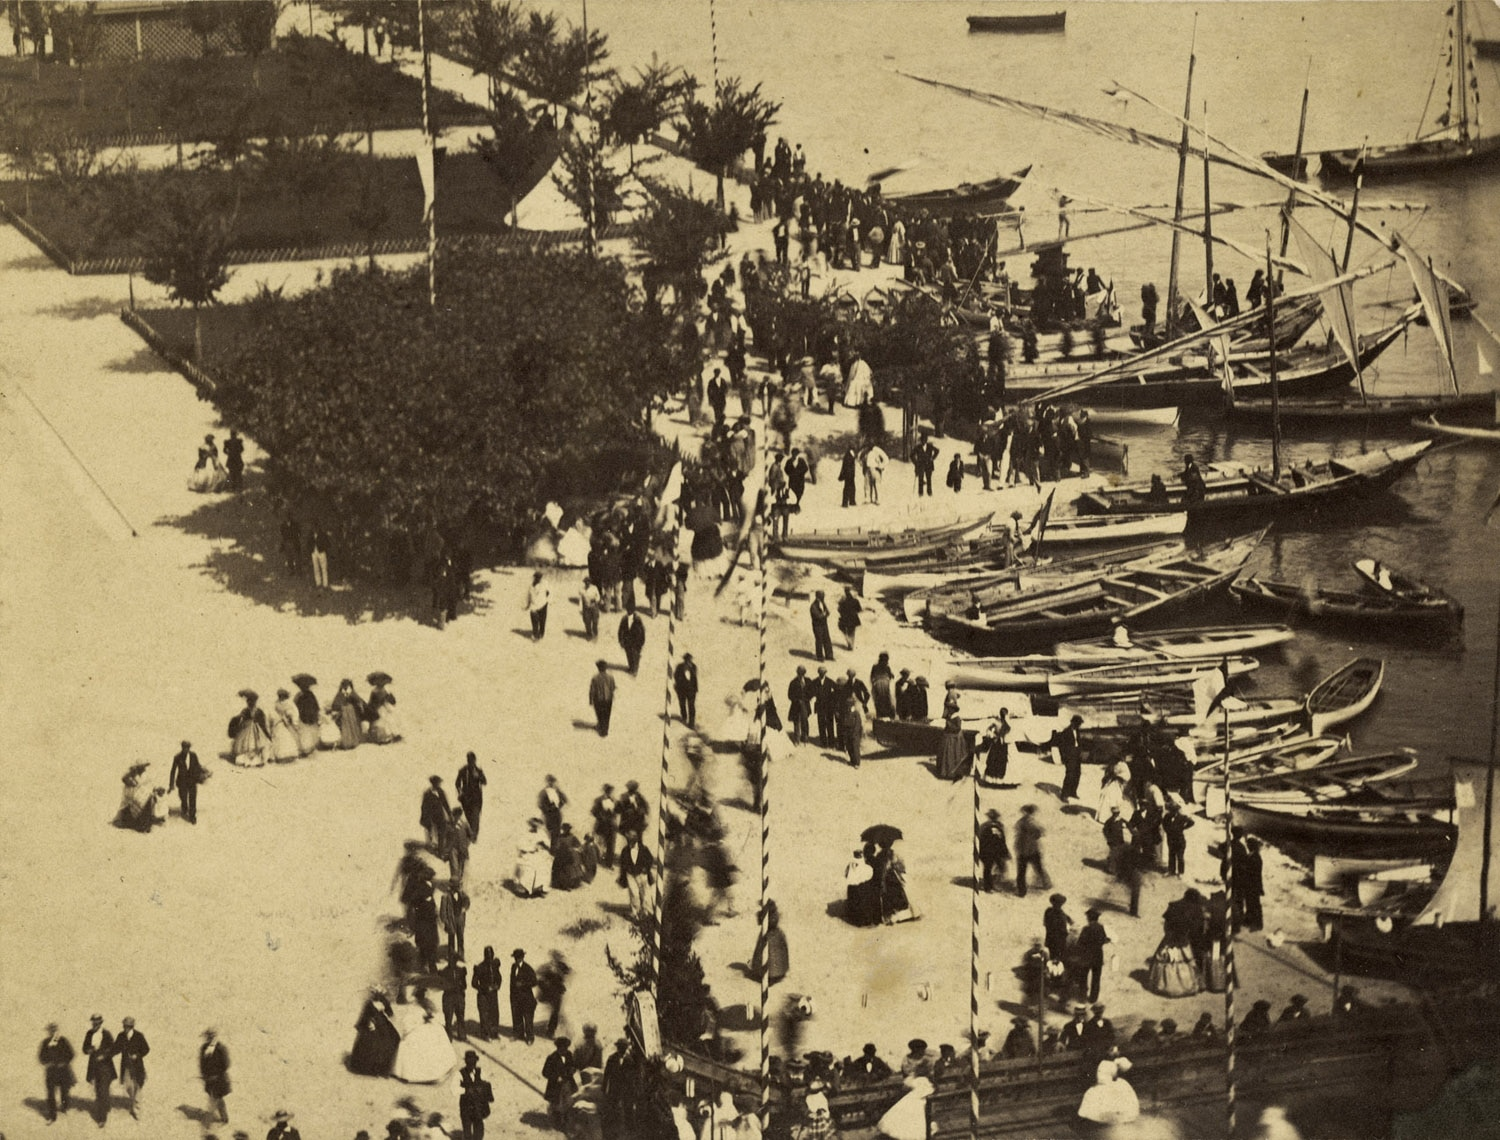 Lausanne, Ouchy, celebrating navigation  July 1863